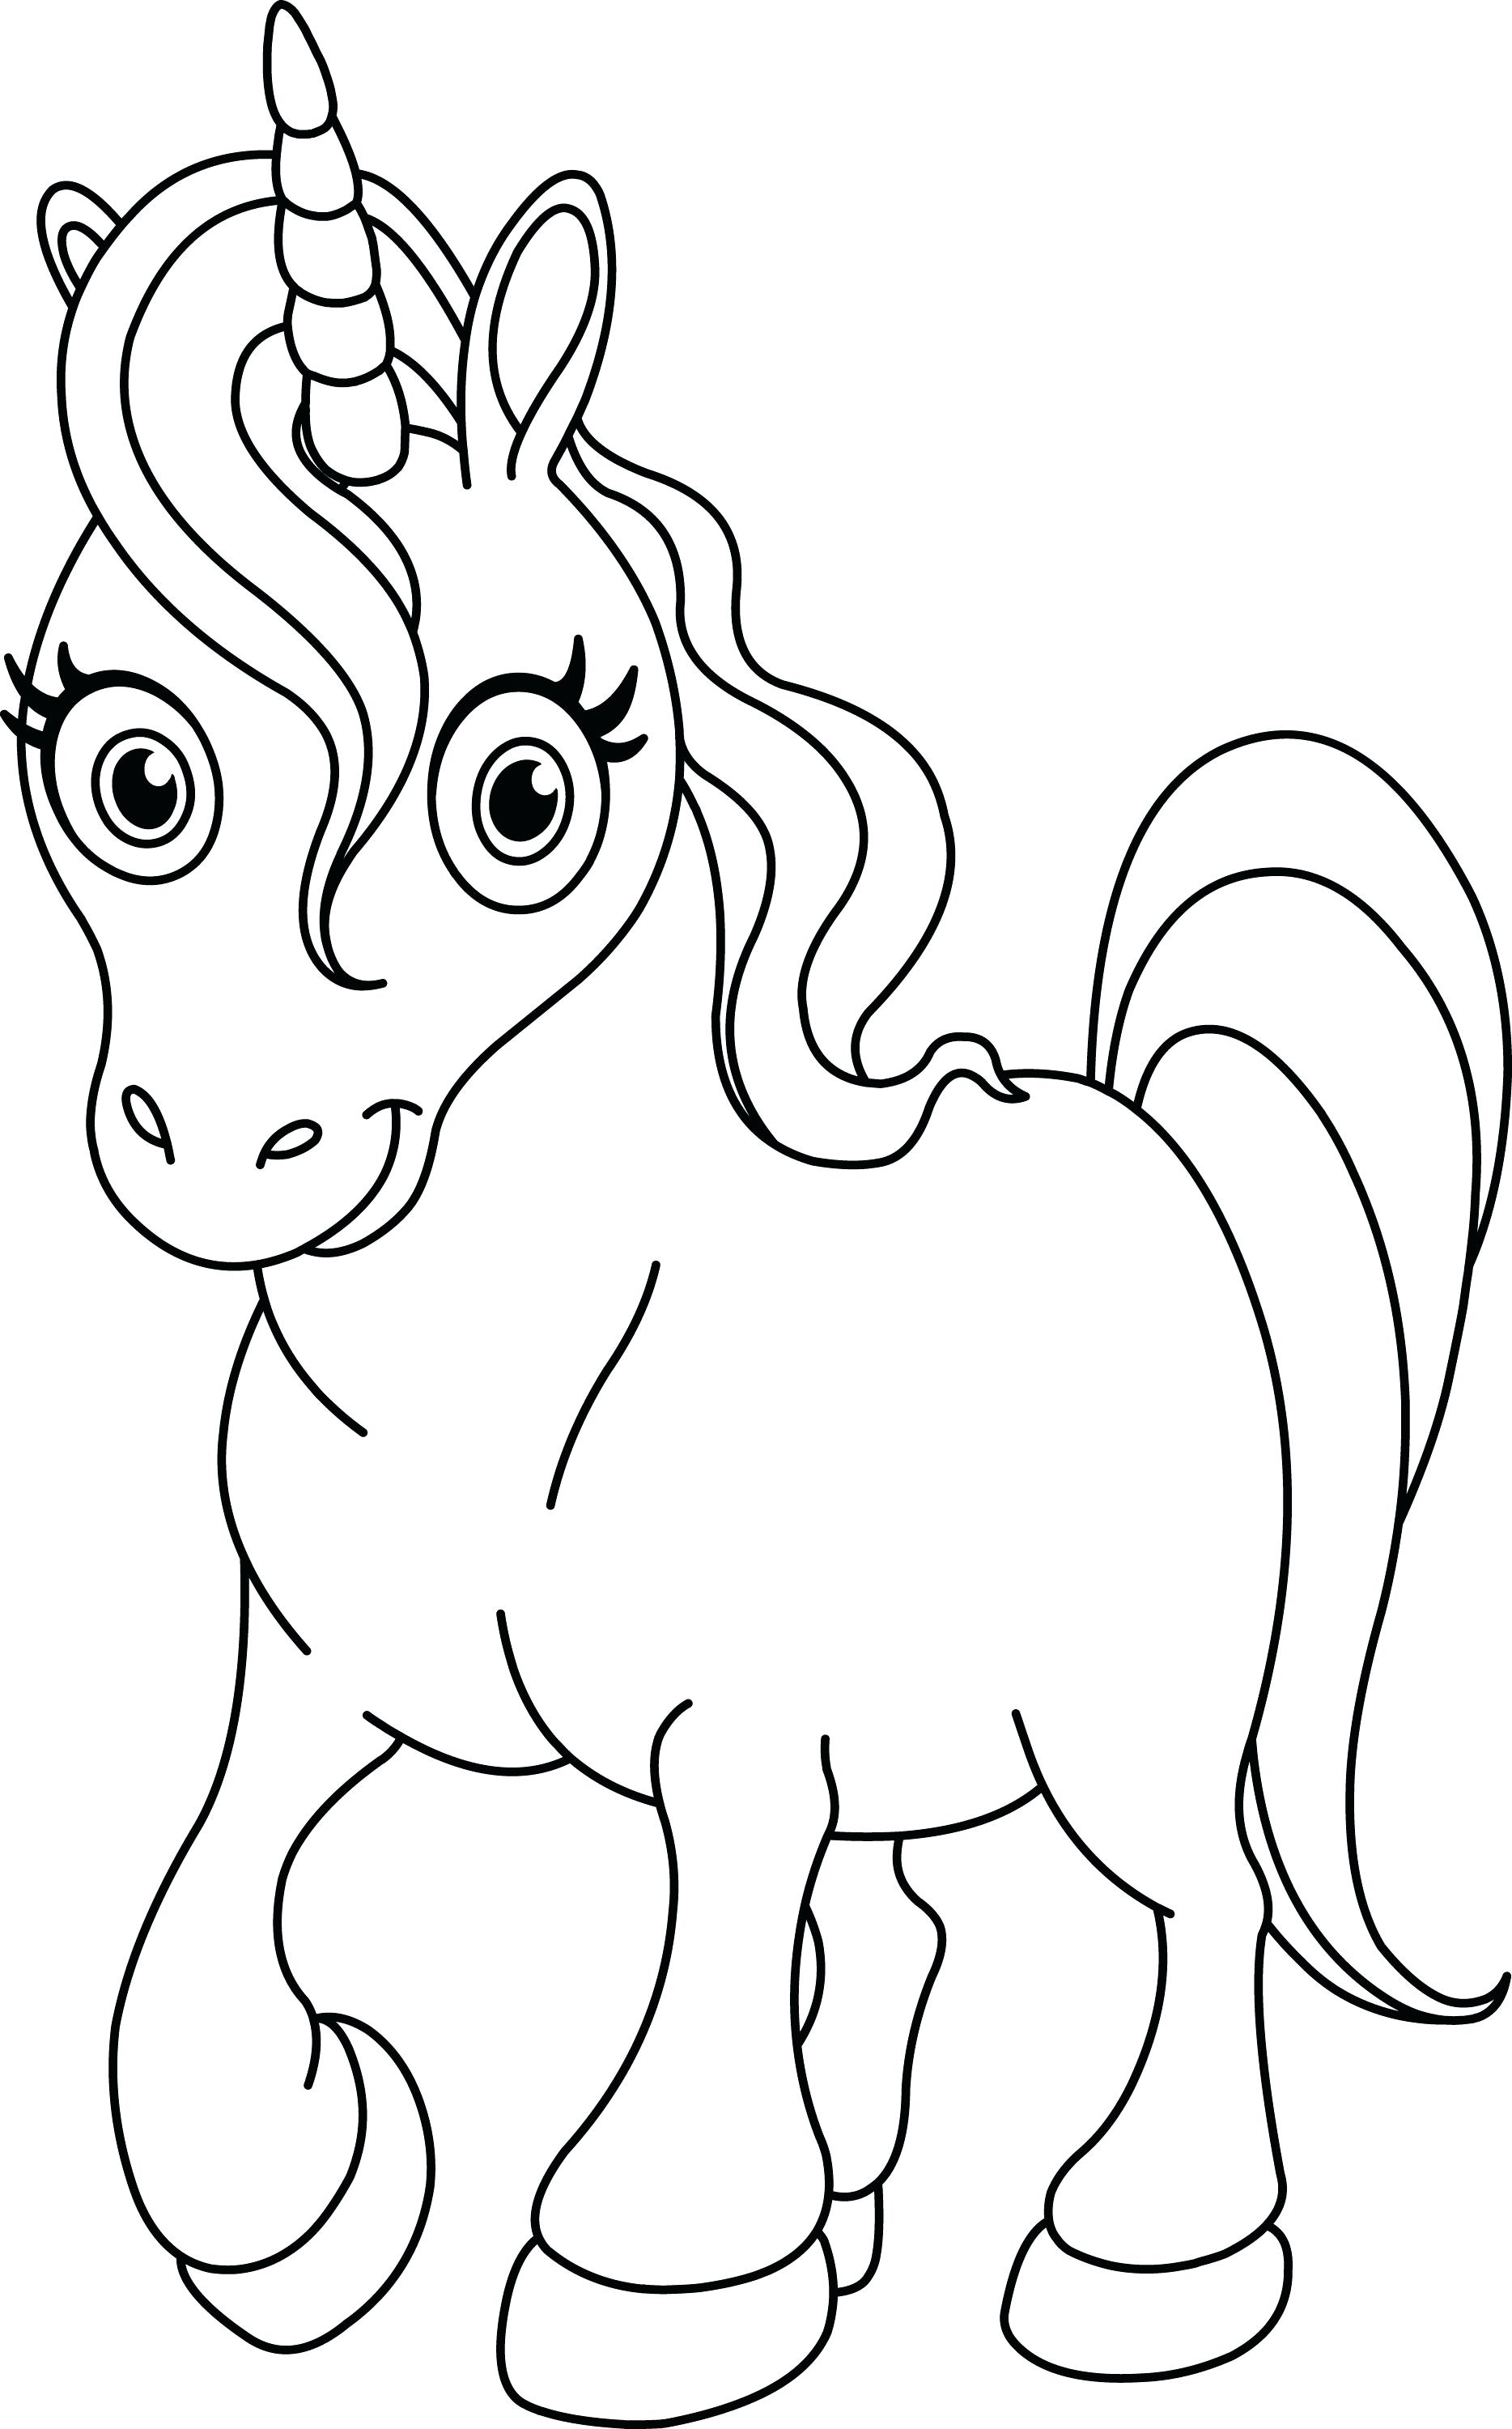 Kids Horse Book Unicorn To Color Clipart Kid Kids Disney Book.